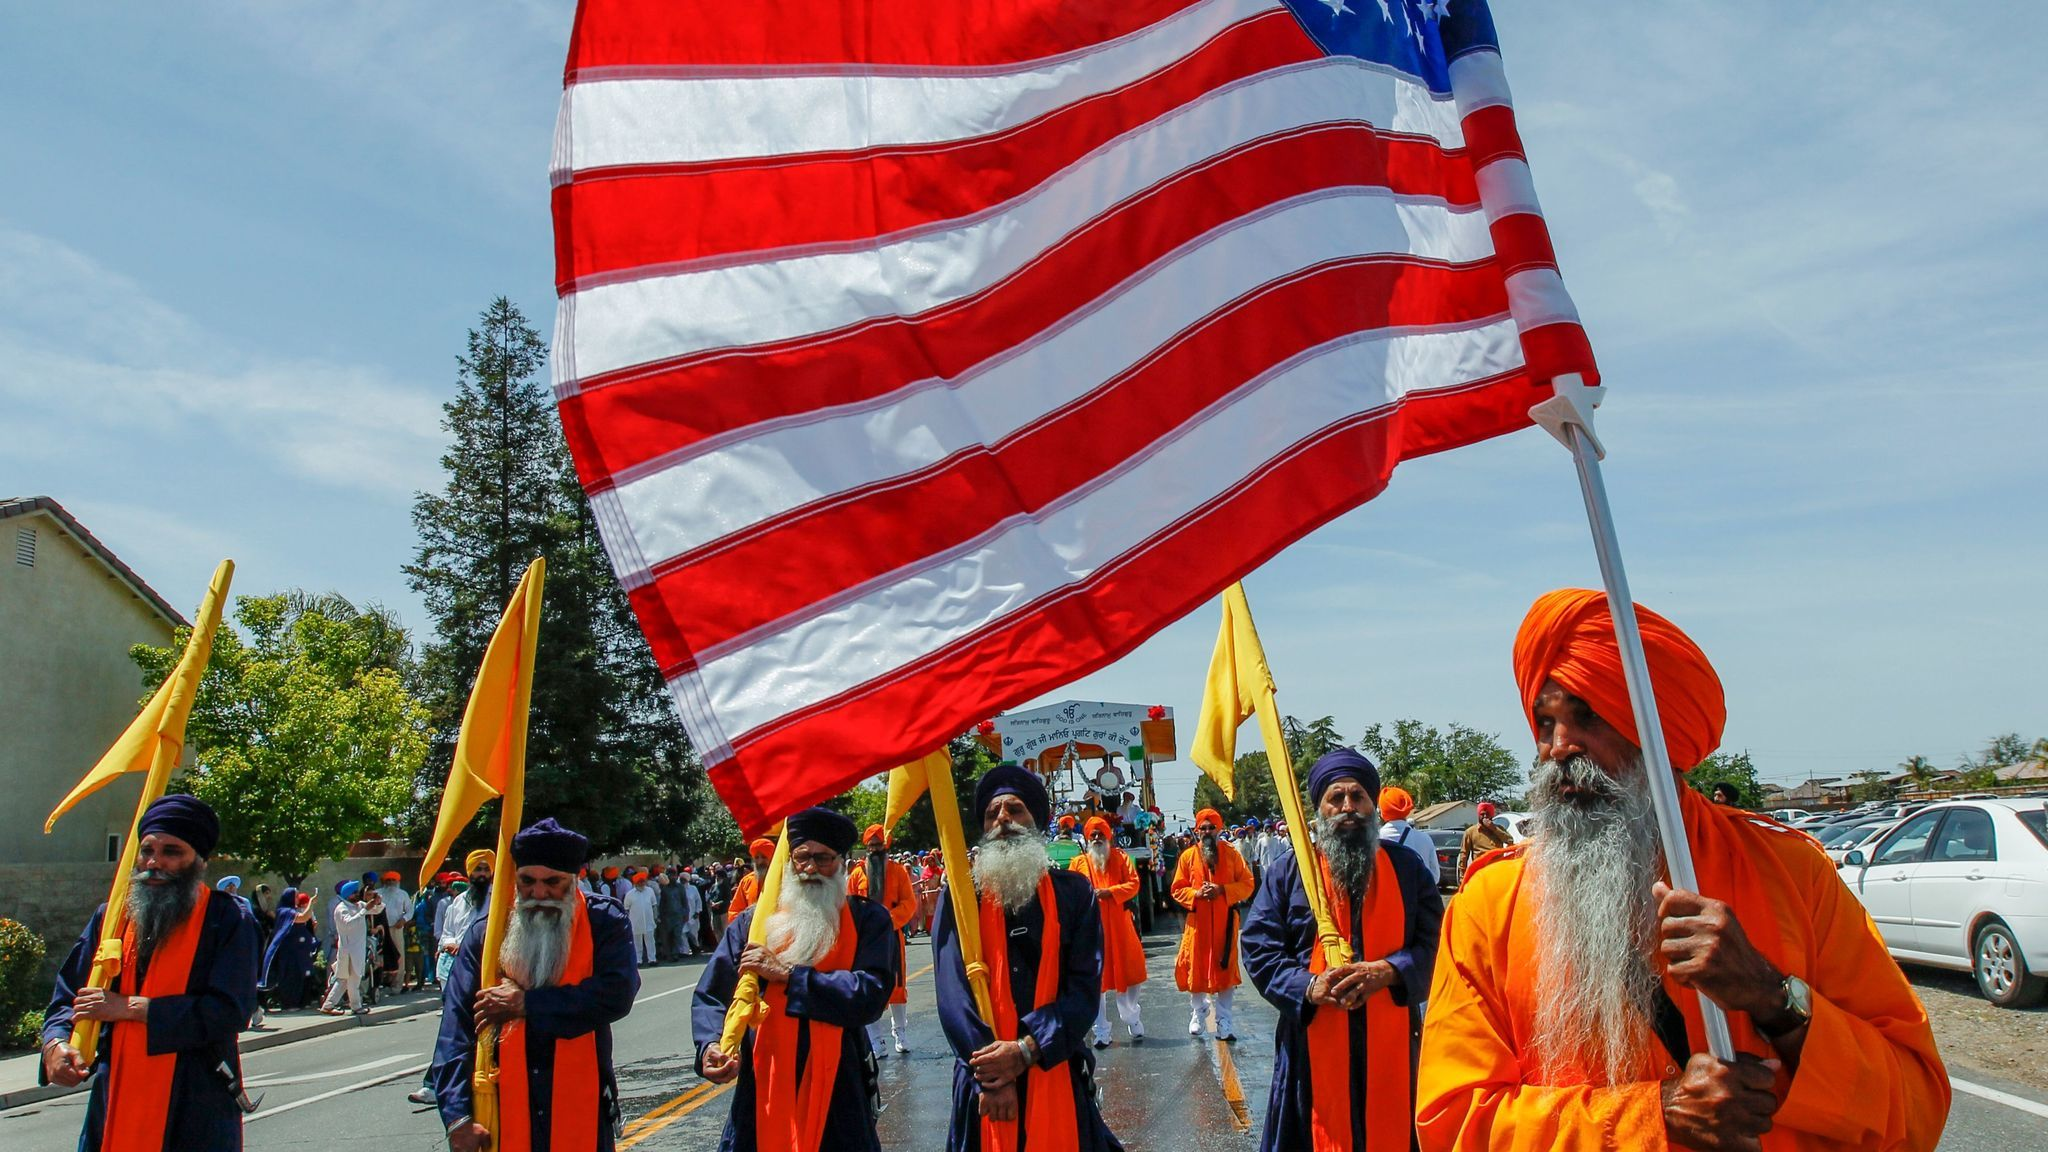 Sikh holy men walk in front of a procession carrying their holy book, Guru Granth Sahib, during a Nagar Kirtan parade.